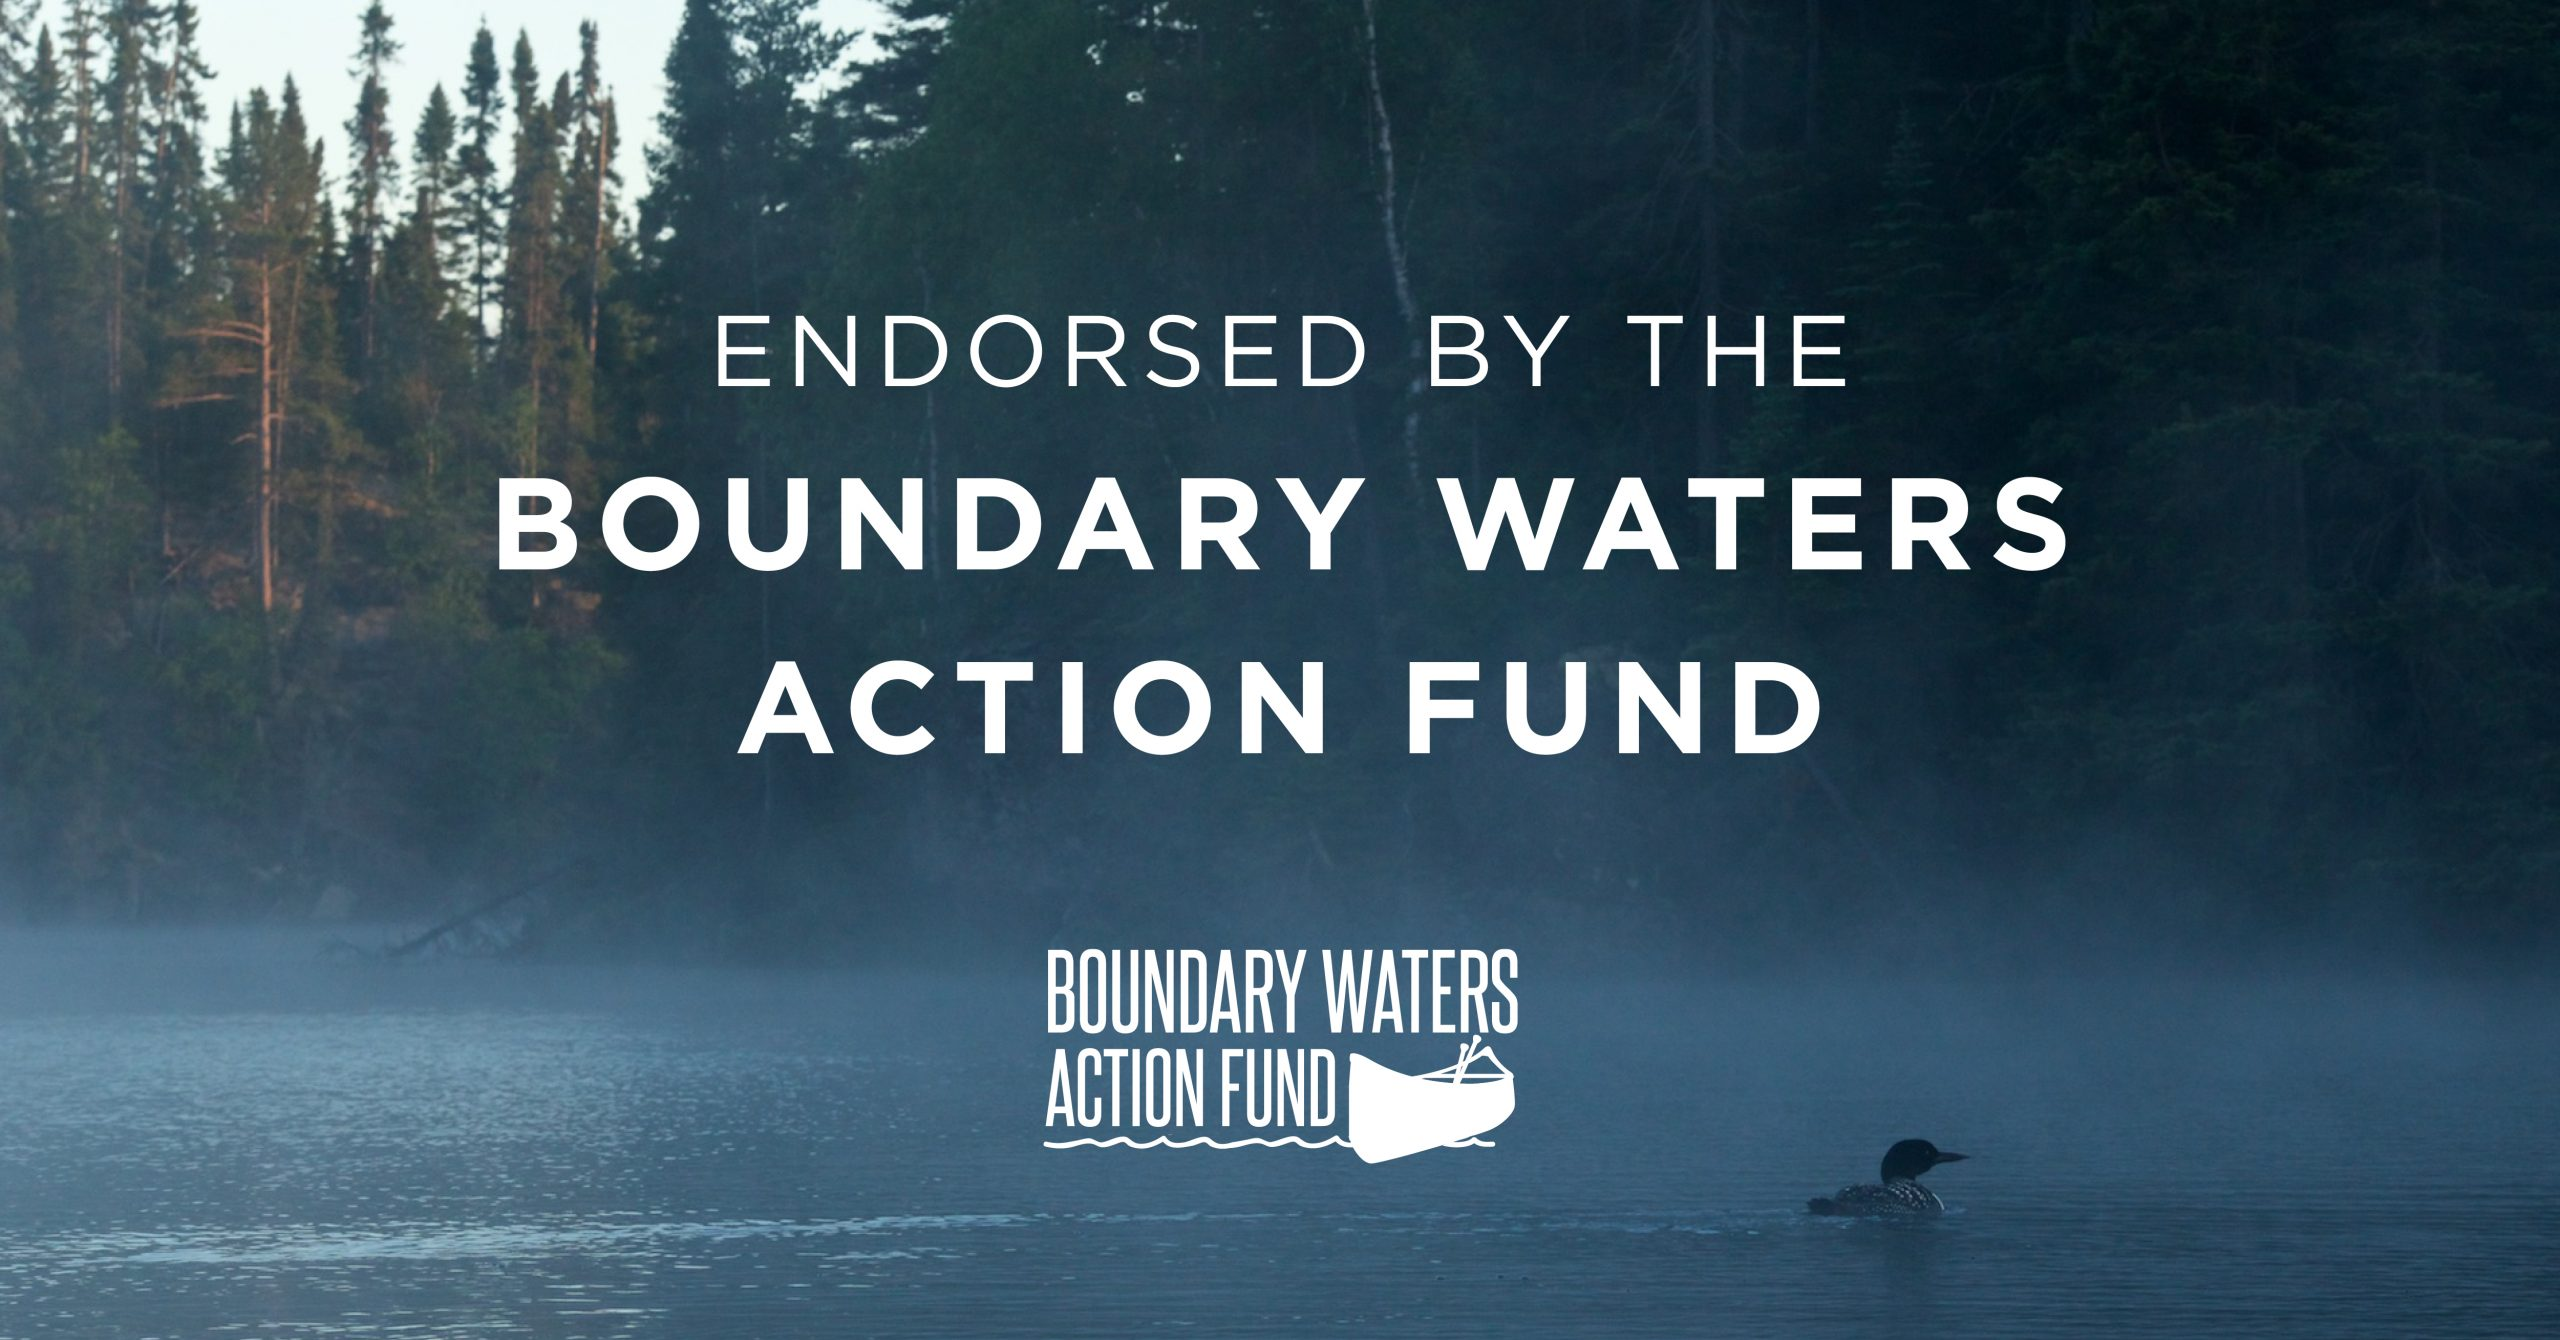 Boundary Waters Action Fund Endorsee